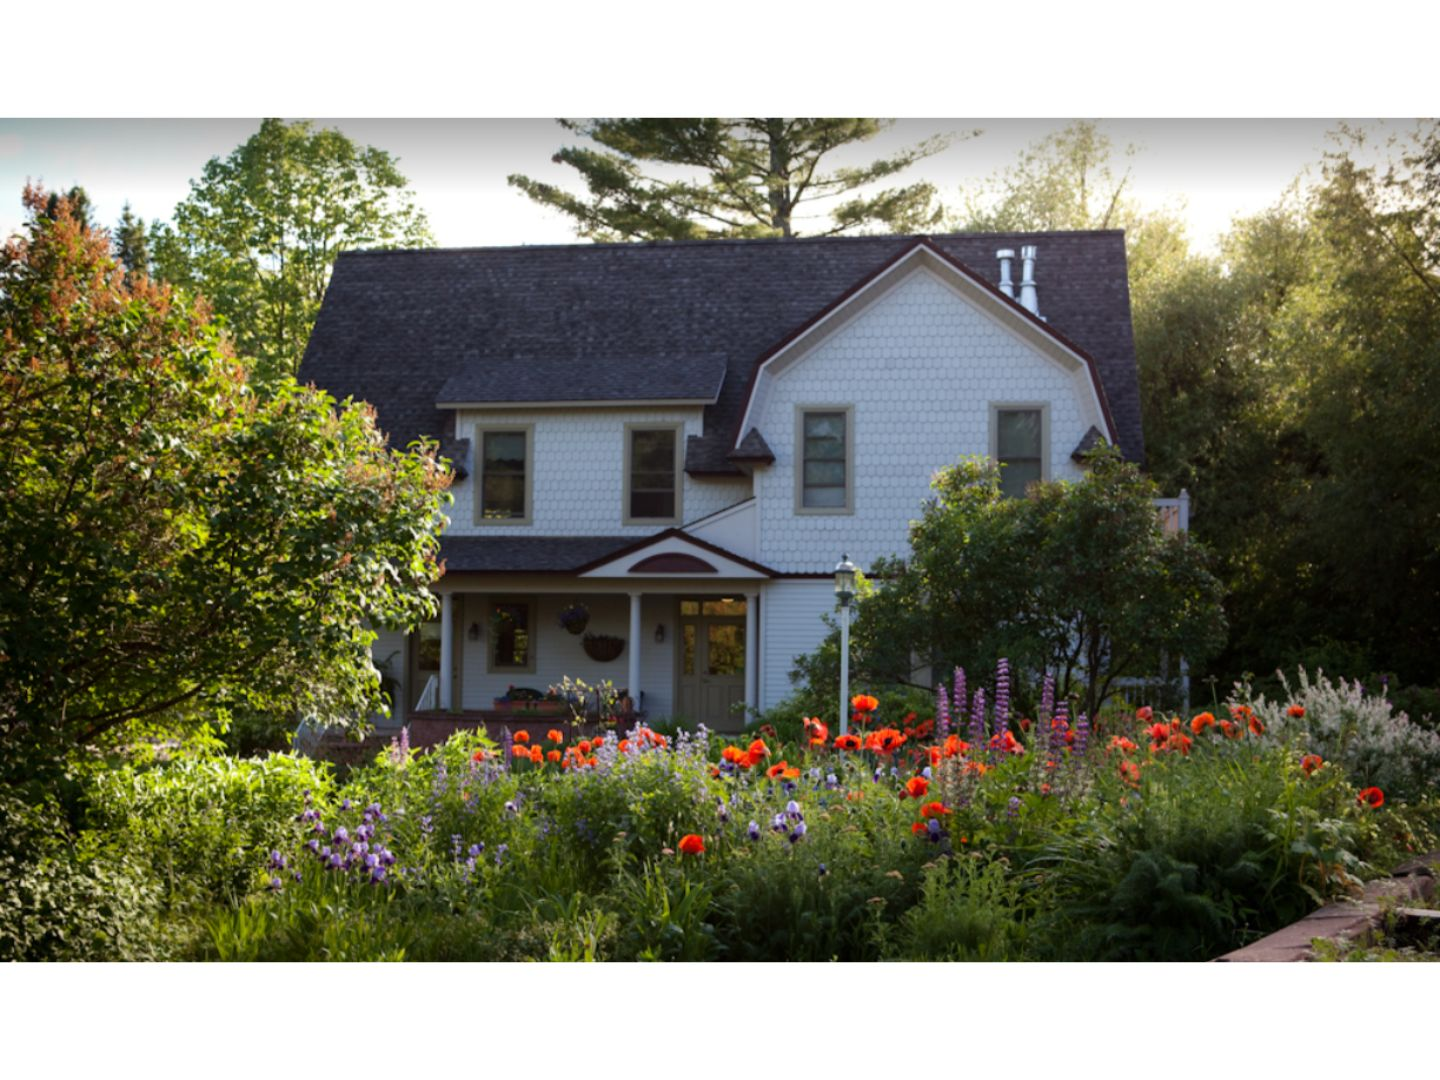 A close up of a flower garden in front of a house at Pinehurst Inn Bed & Breakfast.